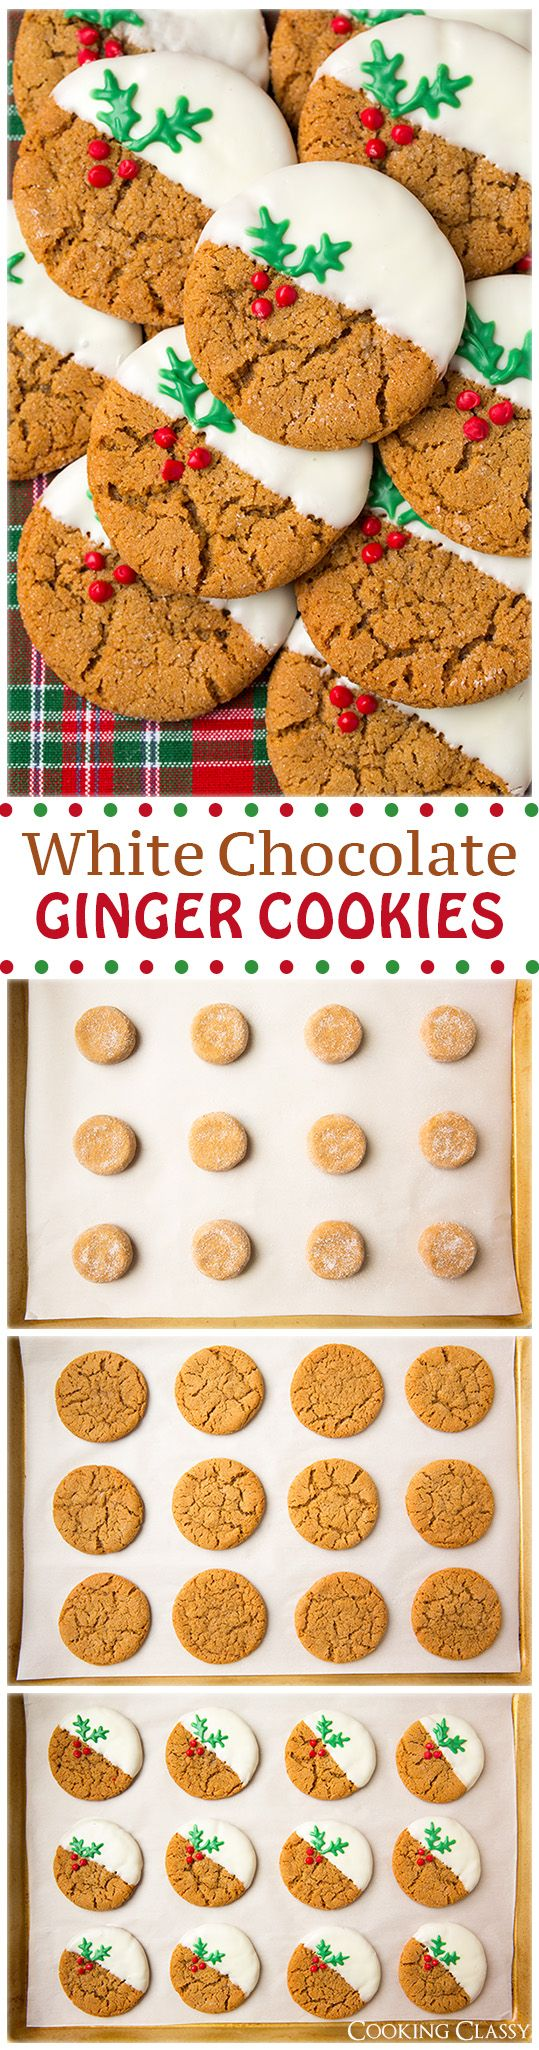 White Chocolate Dipped Ginger Cookies Soft And Chewy These